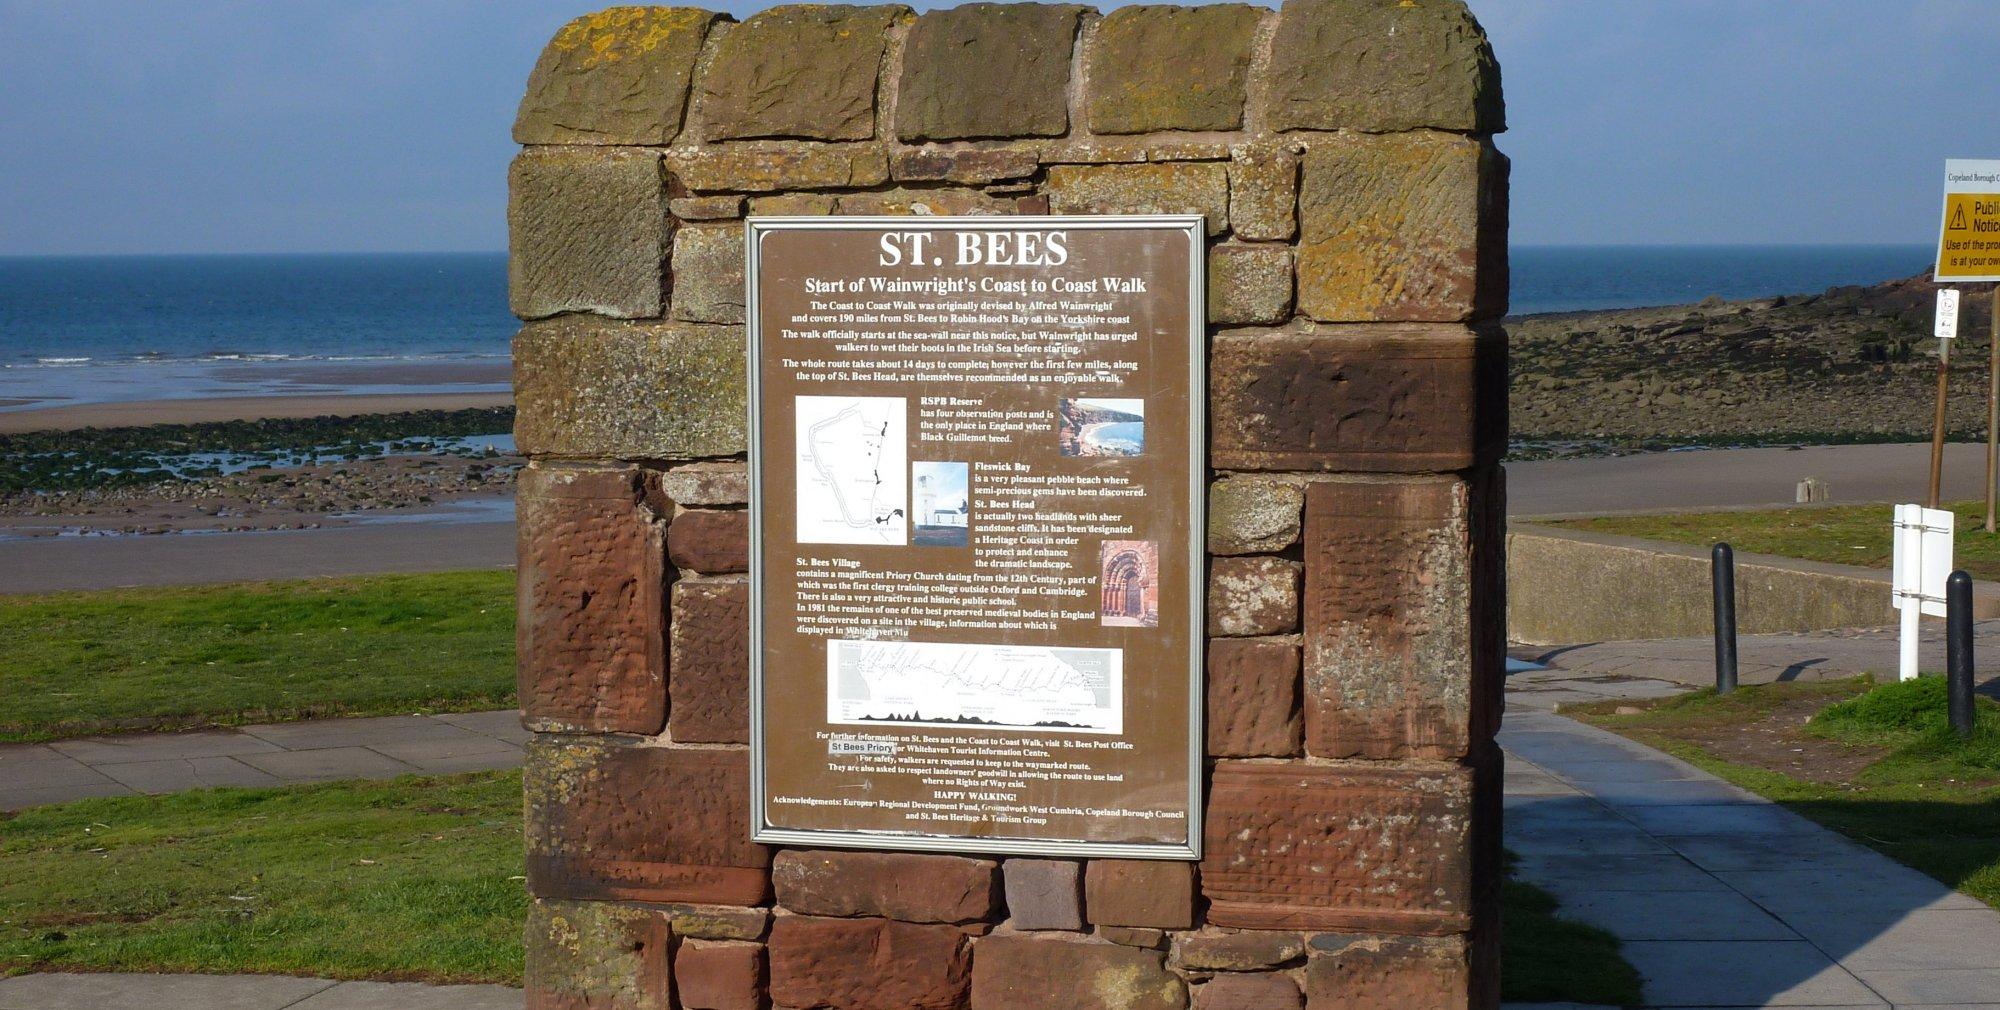 My final destination, in St. Bees